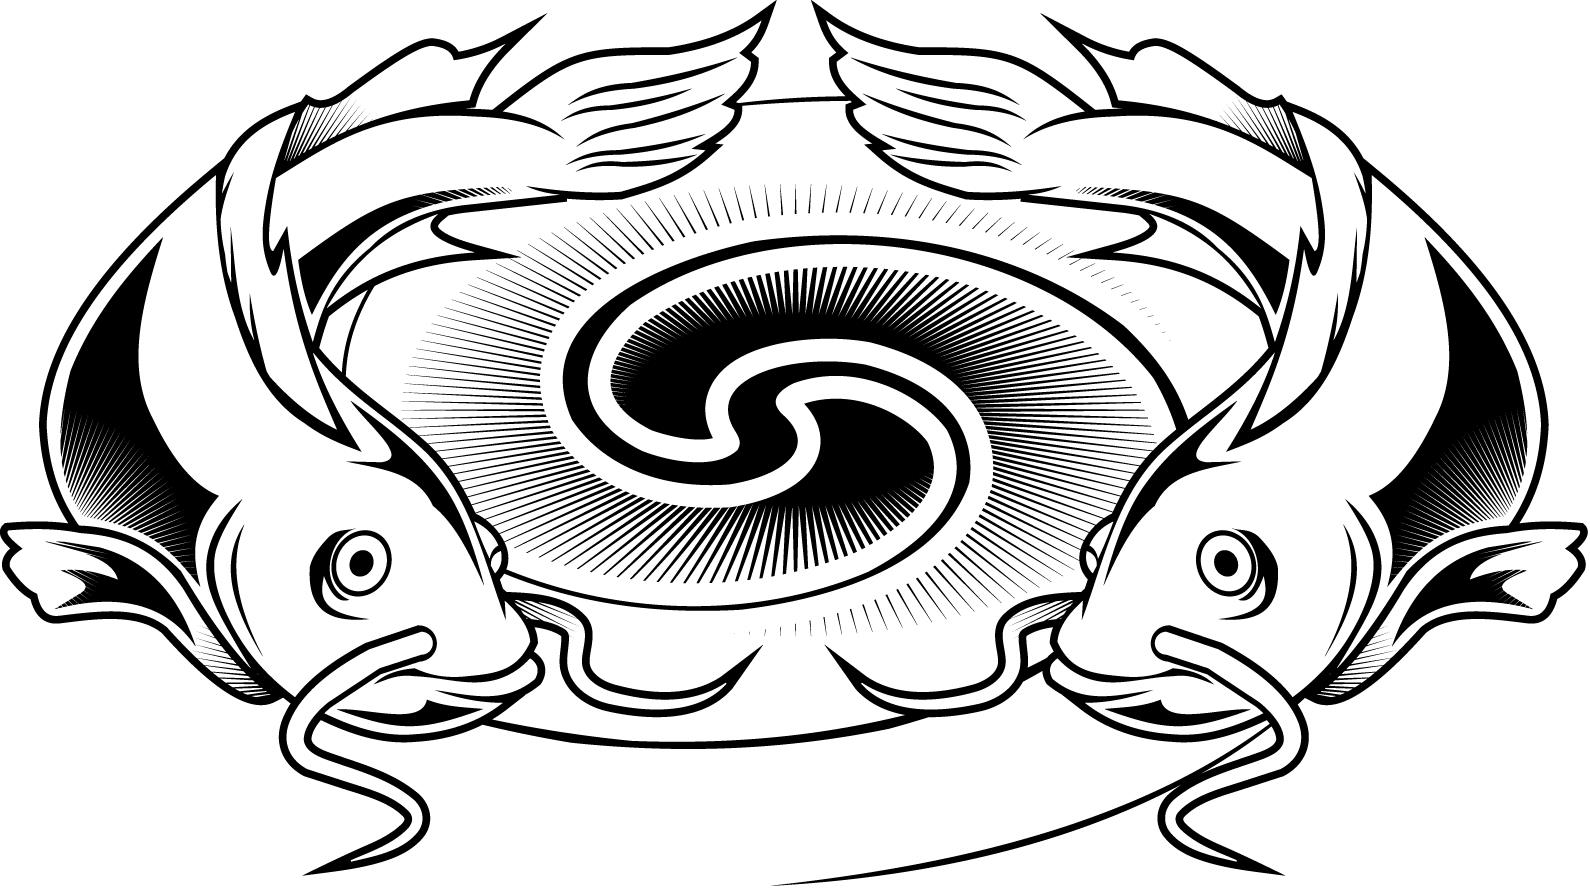 catfish coloring page catfish 18 coloring page supercoloringcom sketch coloring page coloring page catfish